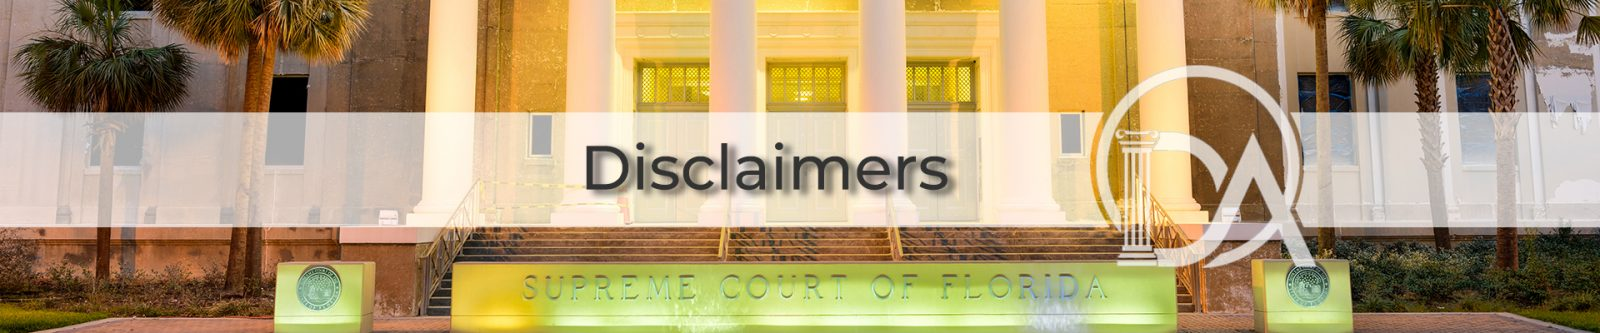 Arvanitakis Law Group Legal Disclaimers